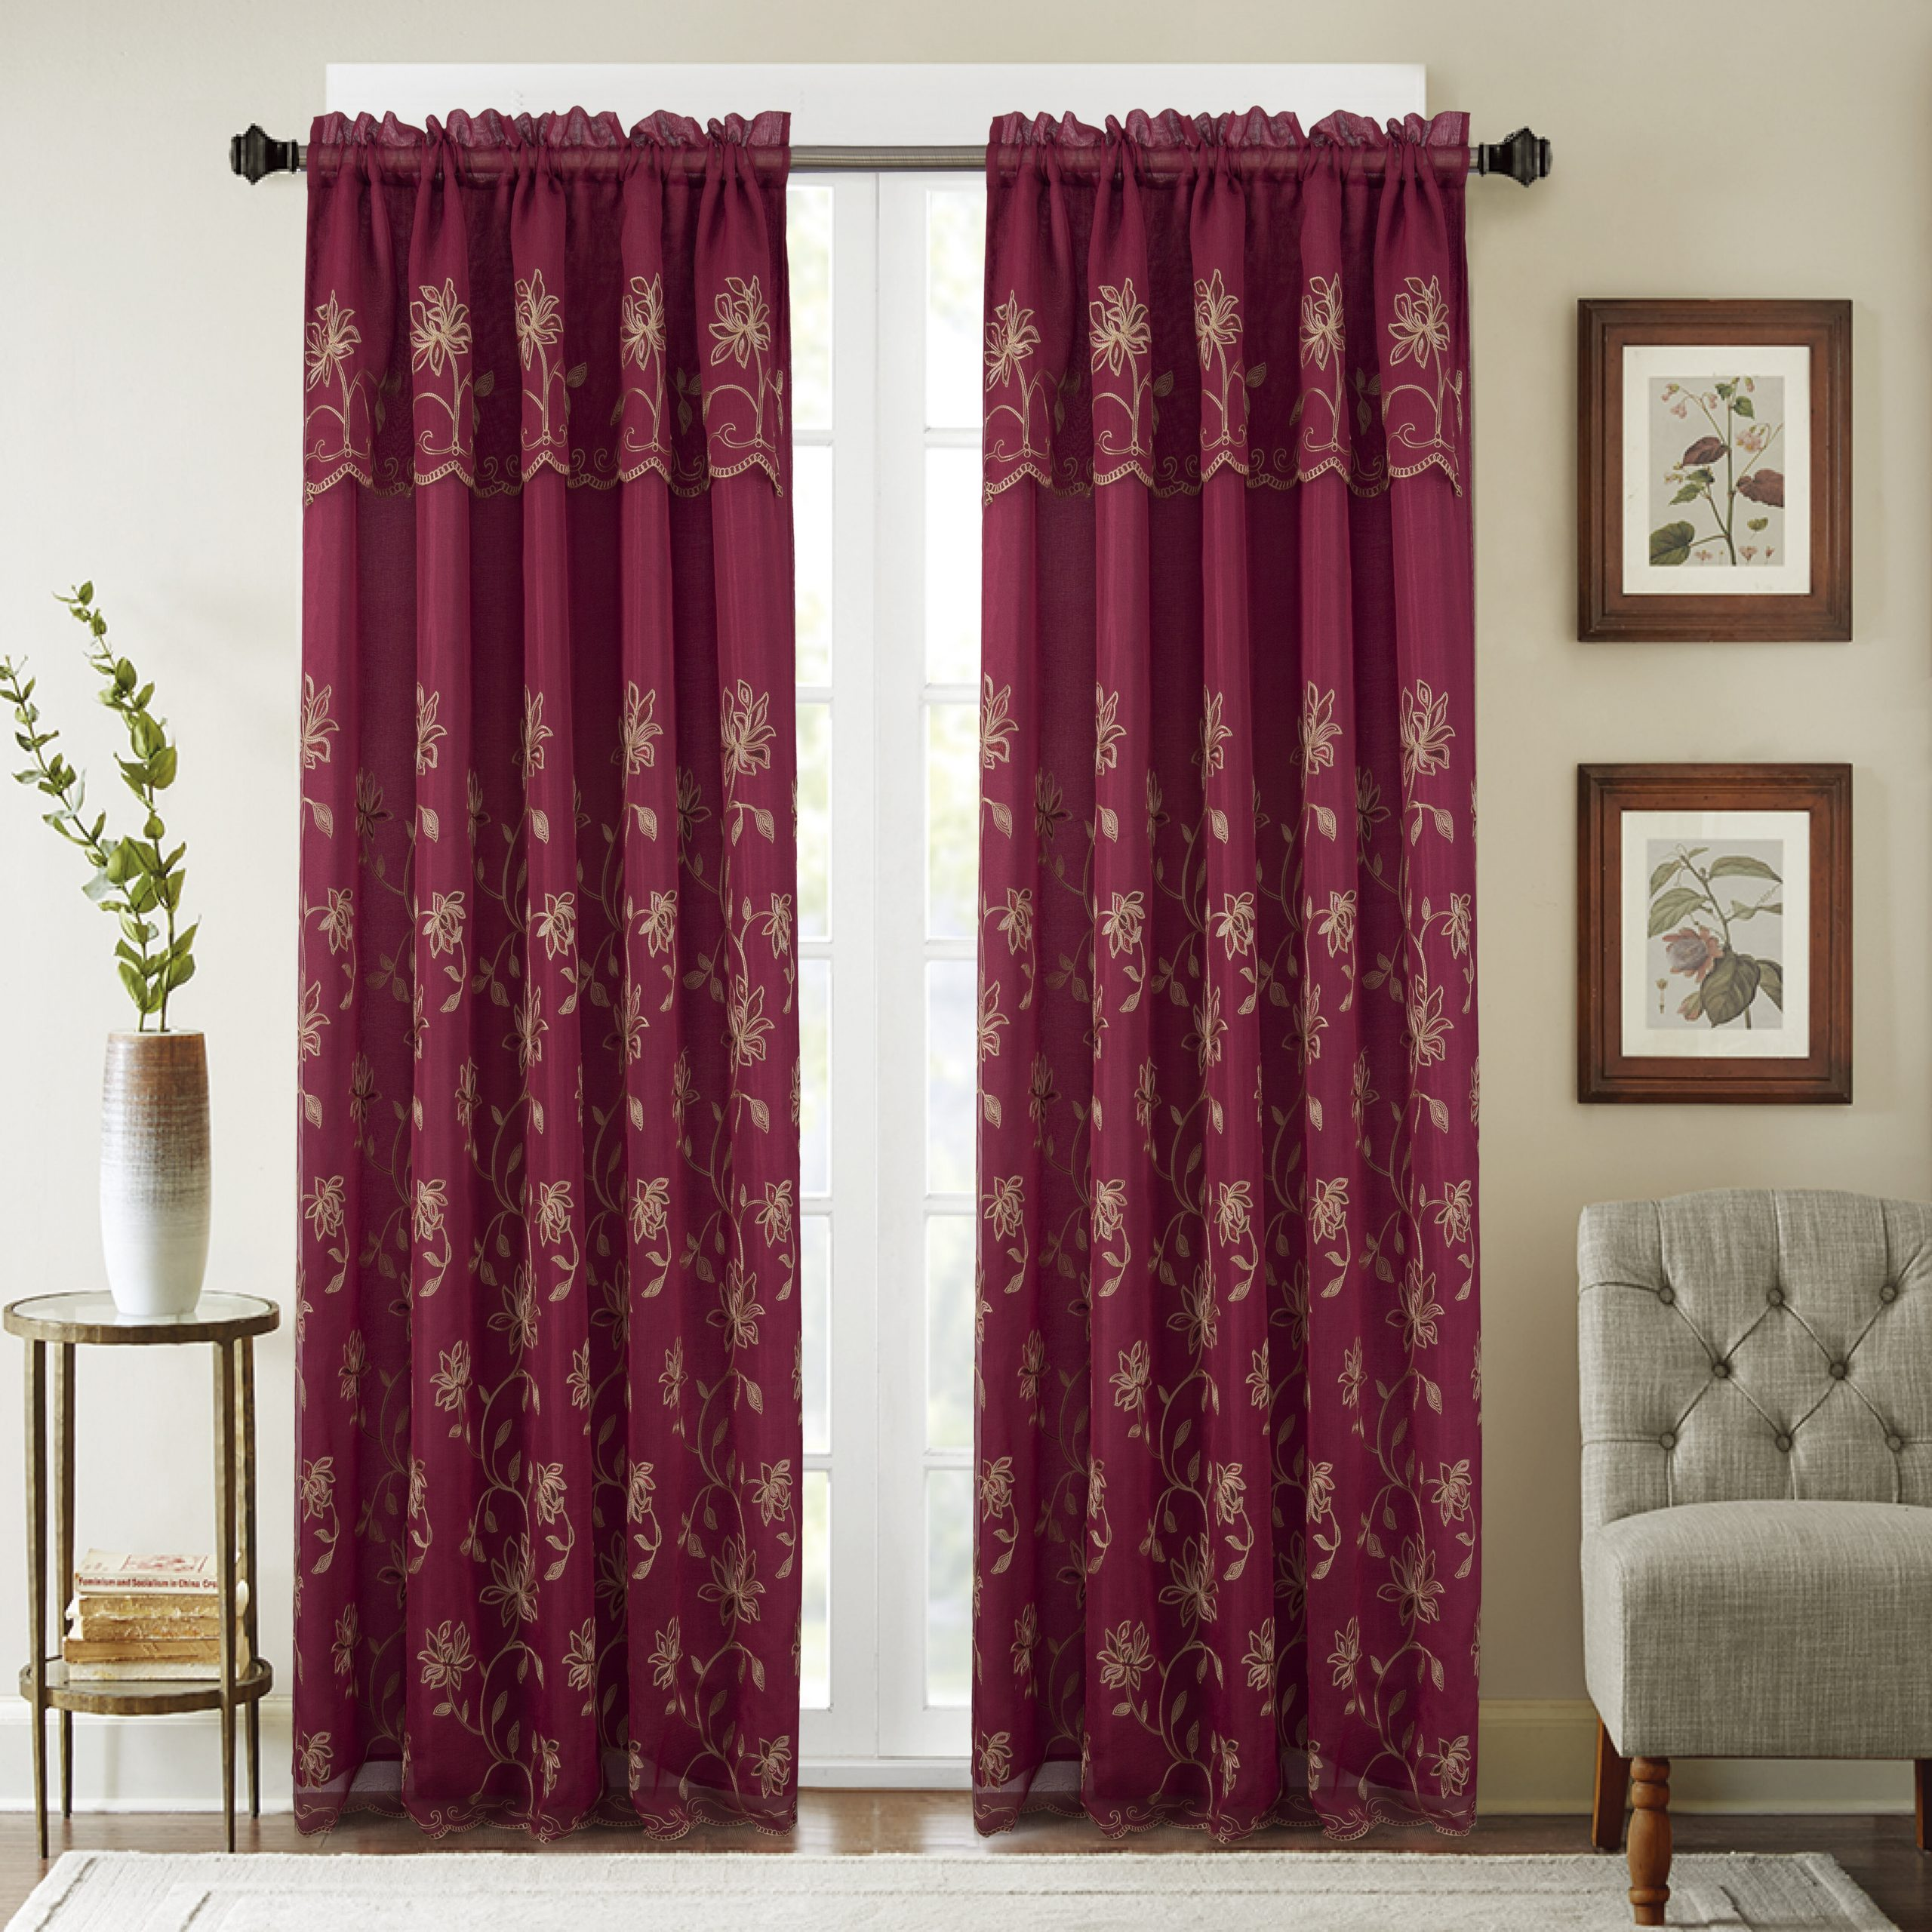 Winston Porter Dugan Embroidered Floral/flower Semi Sheer In Semi Sheer Rod Pocket Kitchen Curtain Valance And Tiers Sets (View 20 of 20)